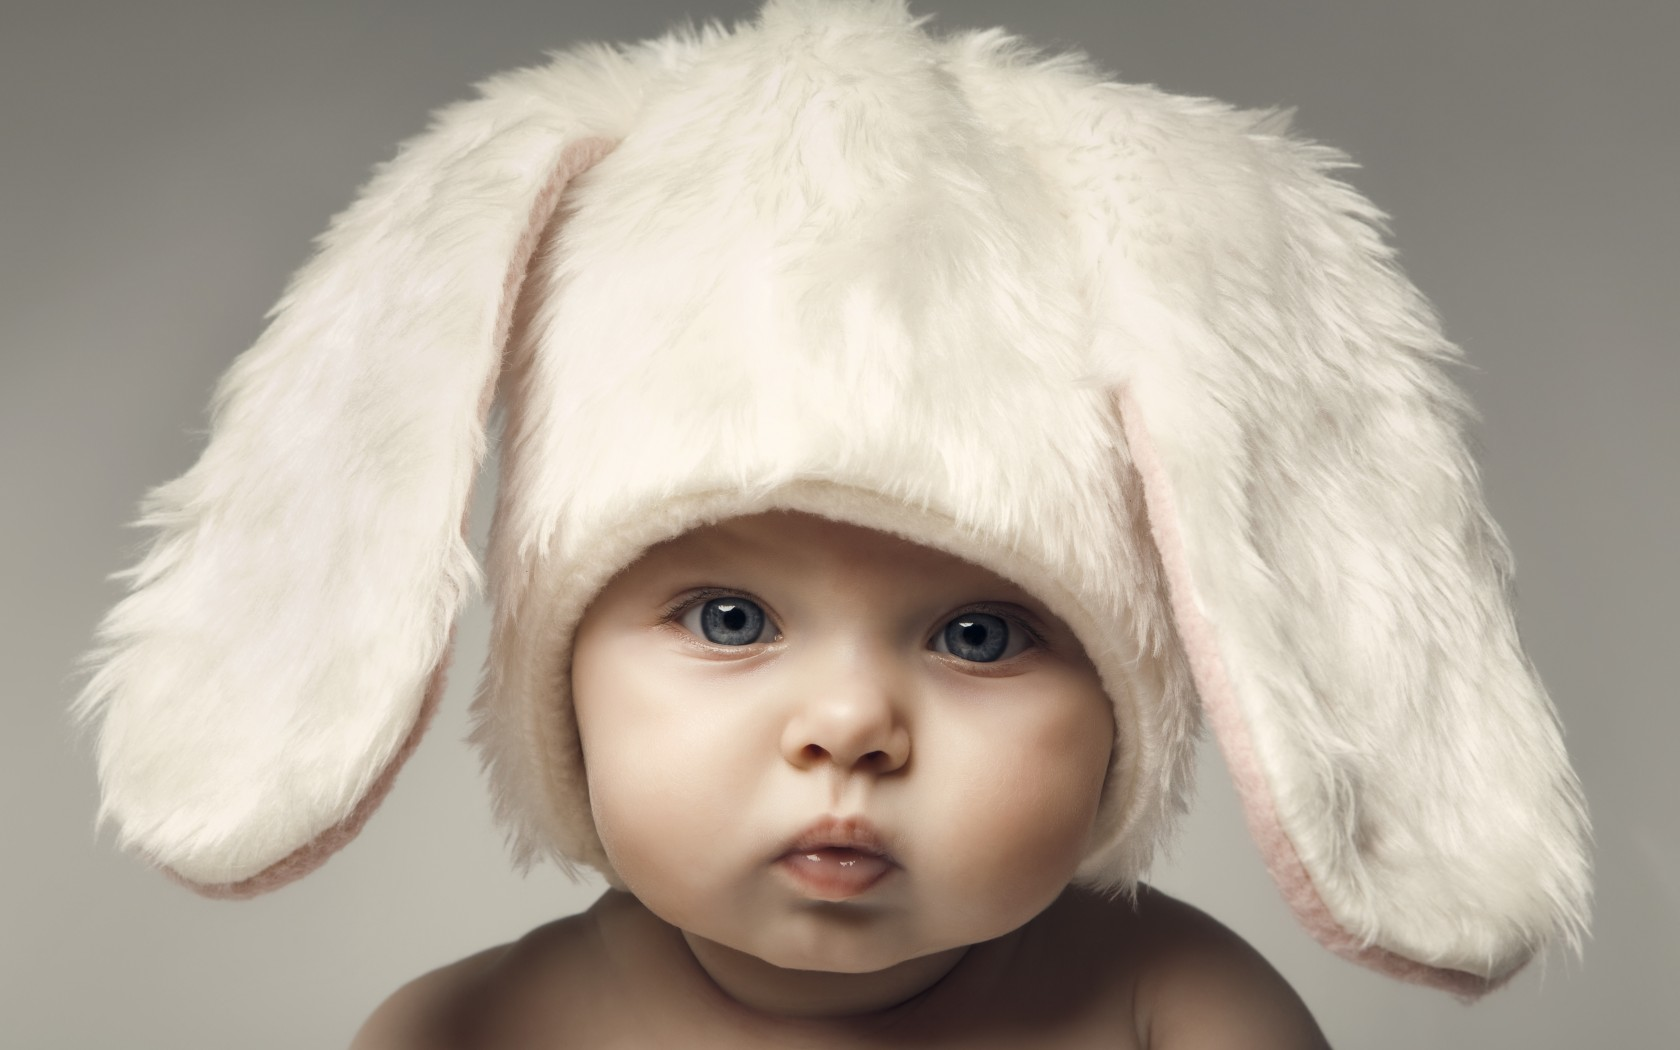 innocence baby kid photo baby hd wallpaper cute rabbit bunny 1680x1050